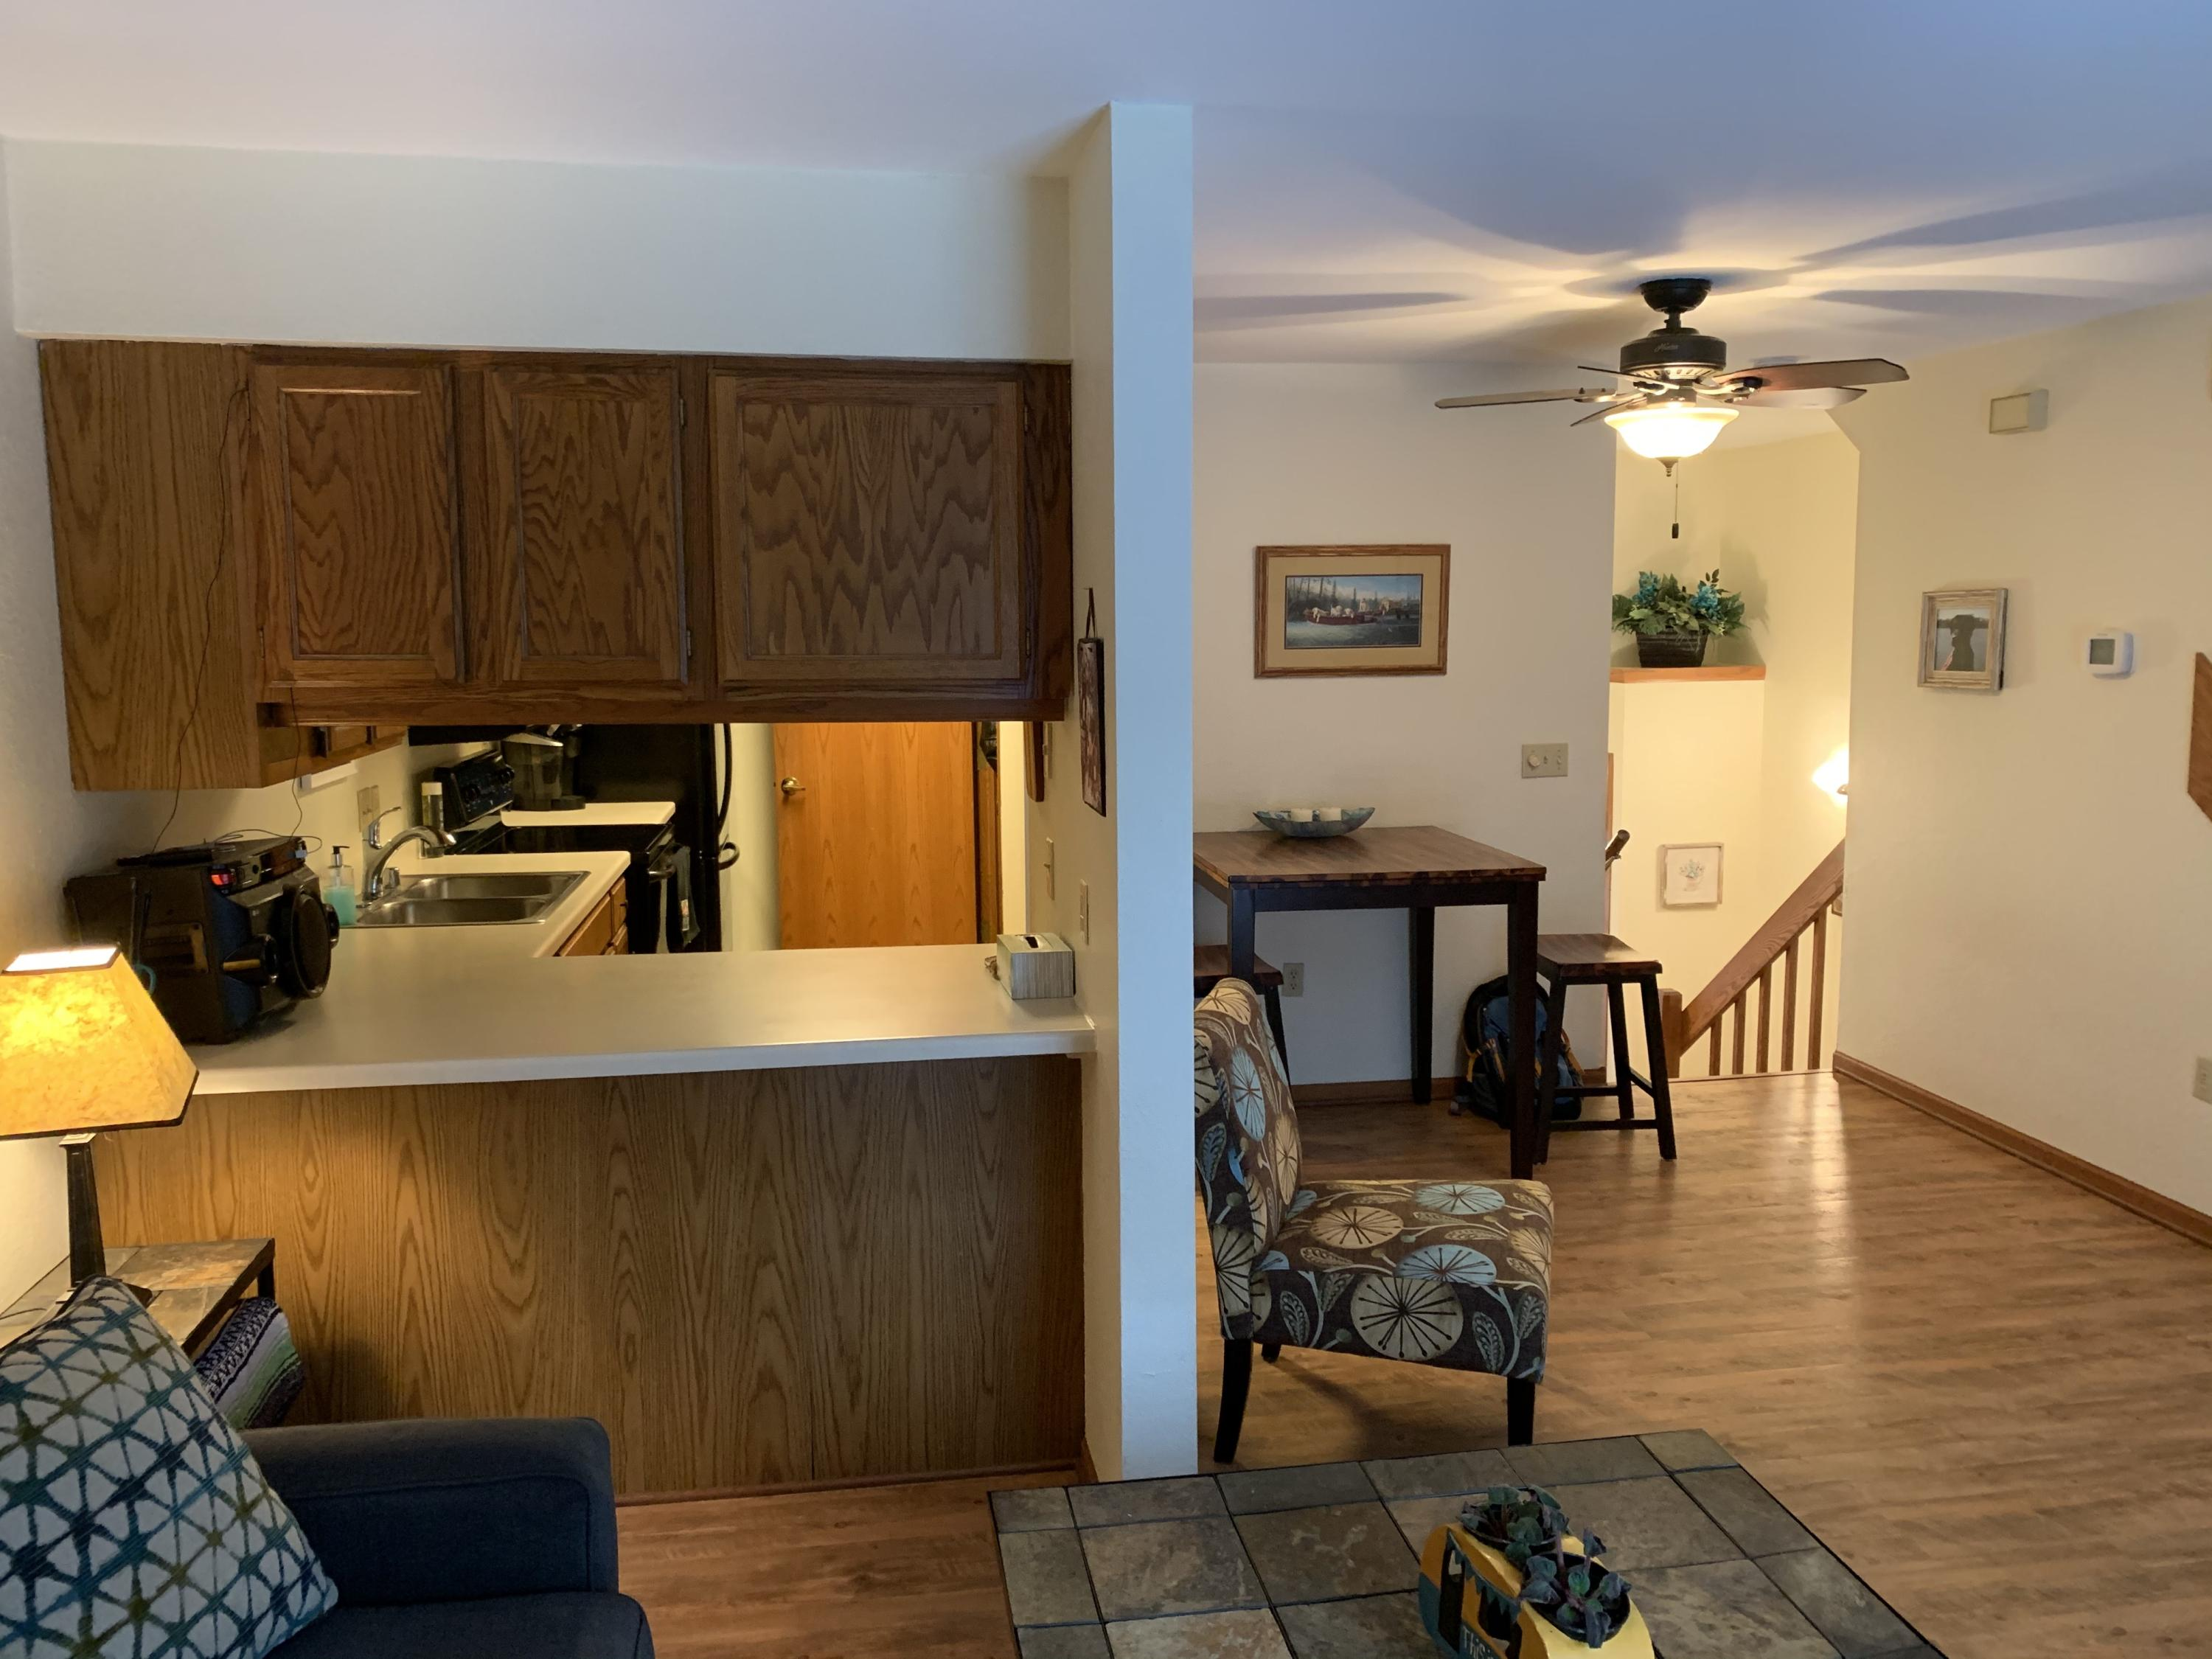 186 Country Ct, Delafield, Wisconsin 53018, 2 Bedrooms Bedrooms, 4 Rooms Rooms,2 BathroomsBathrooms,Condominiums,For Sale,Country Ct,2,1666494